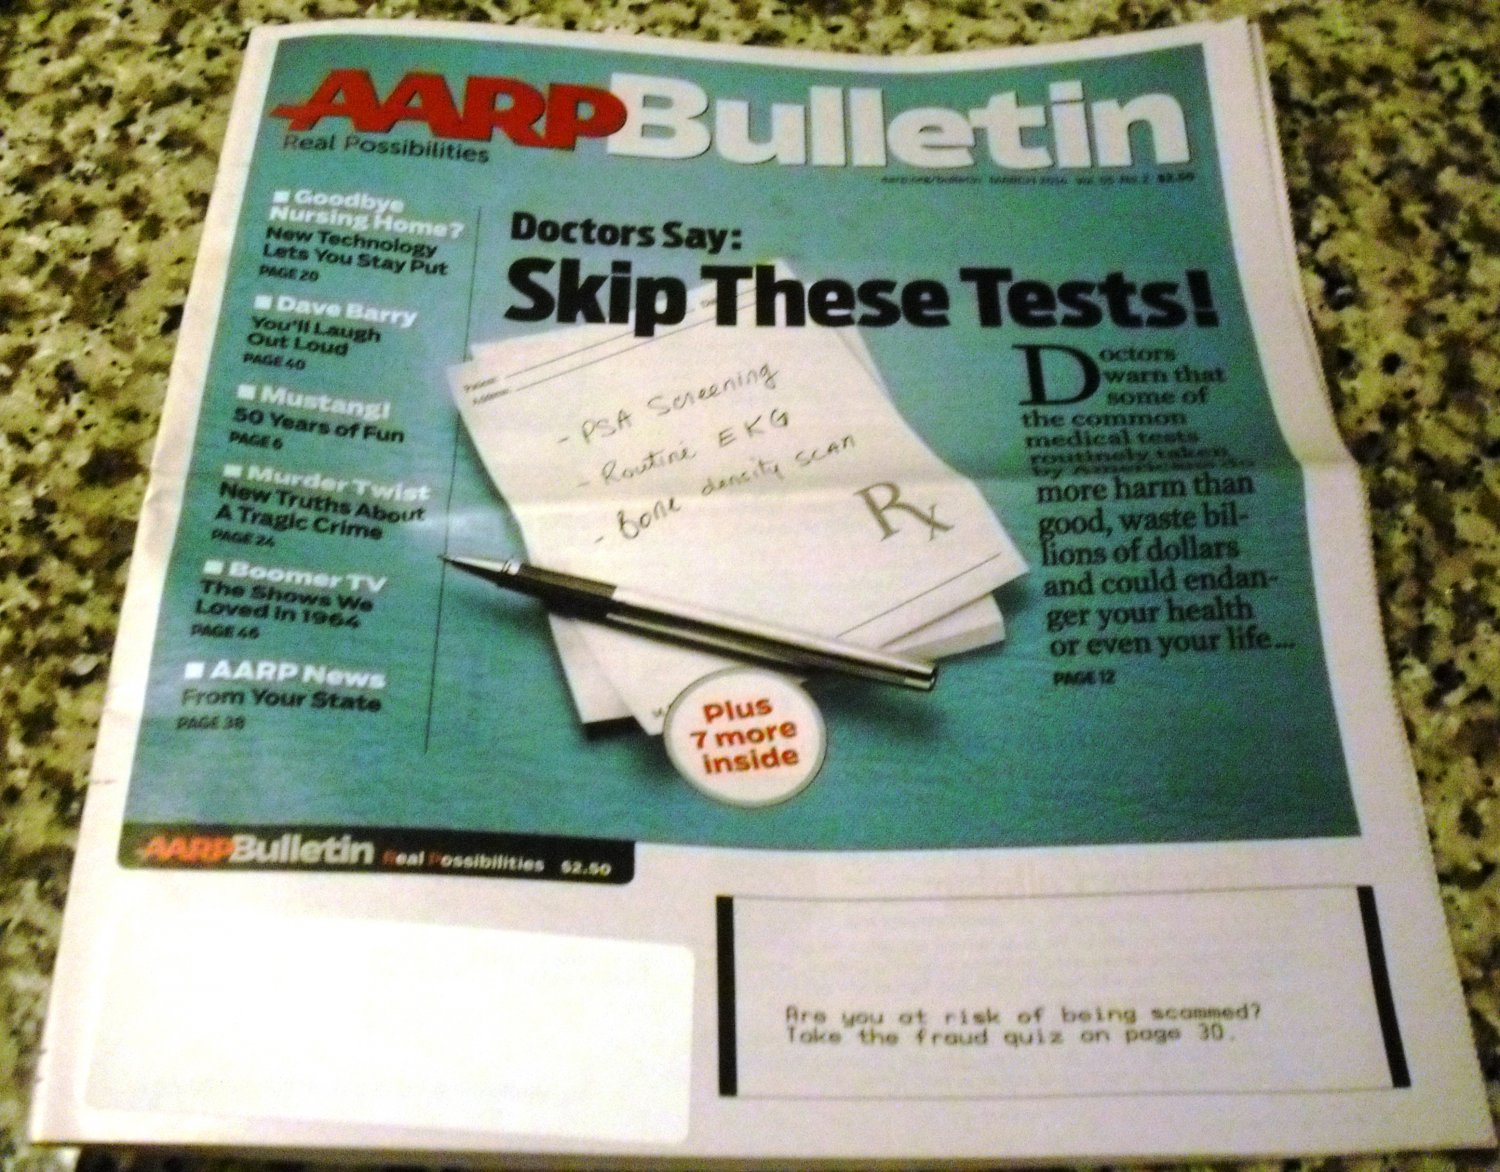 AARP Bulletin March 2014 Vol. 55, No. 2 - Skip These Medical Tests!